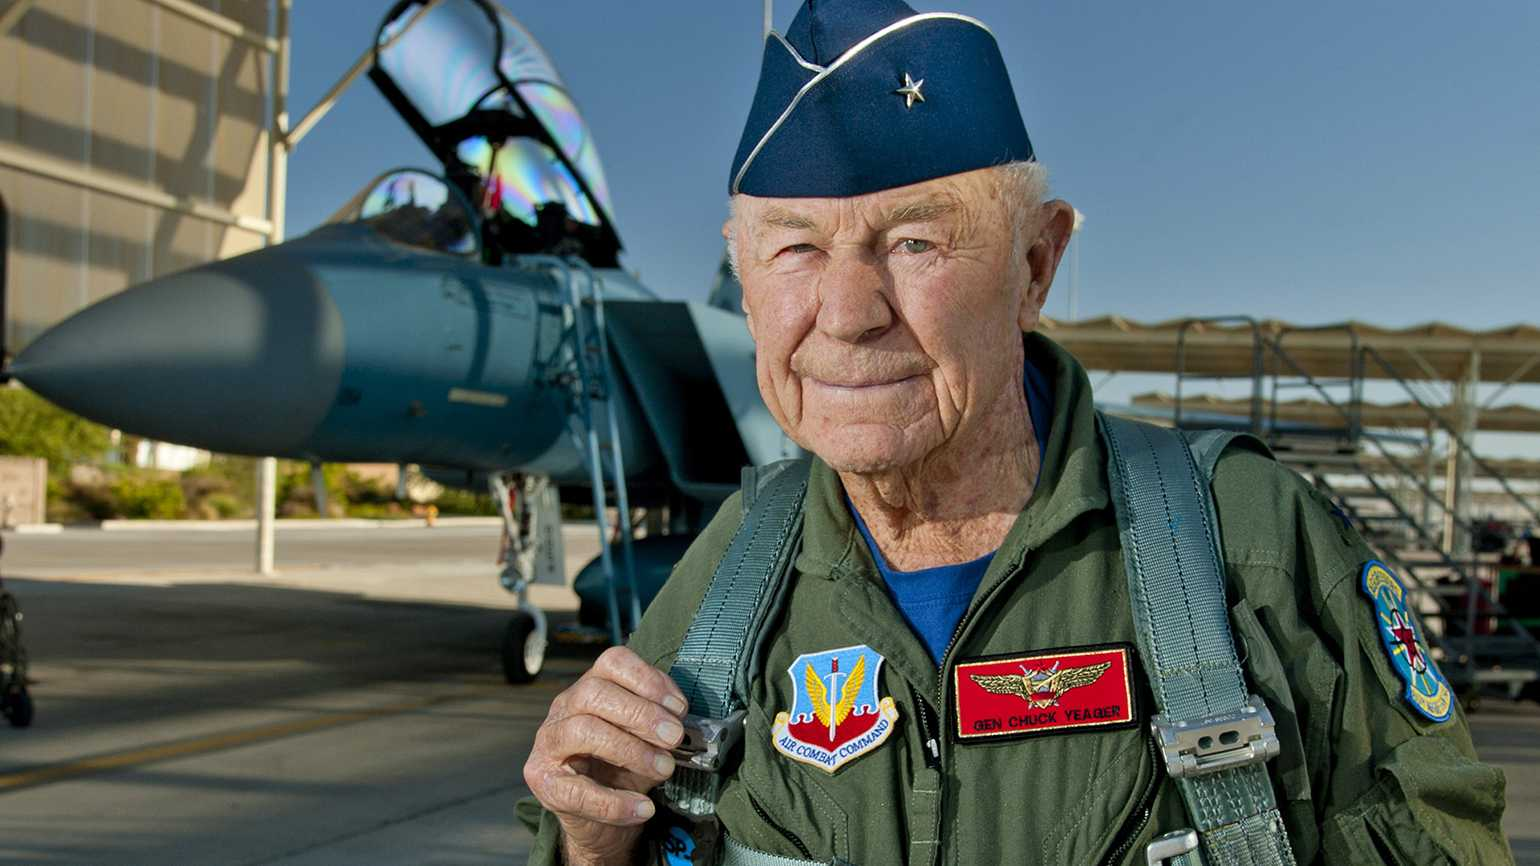 Chuck Yeager by Master Sgt. Jason Edwards; ttps://www.dvidshub.net/image/722033, Public Domain